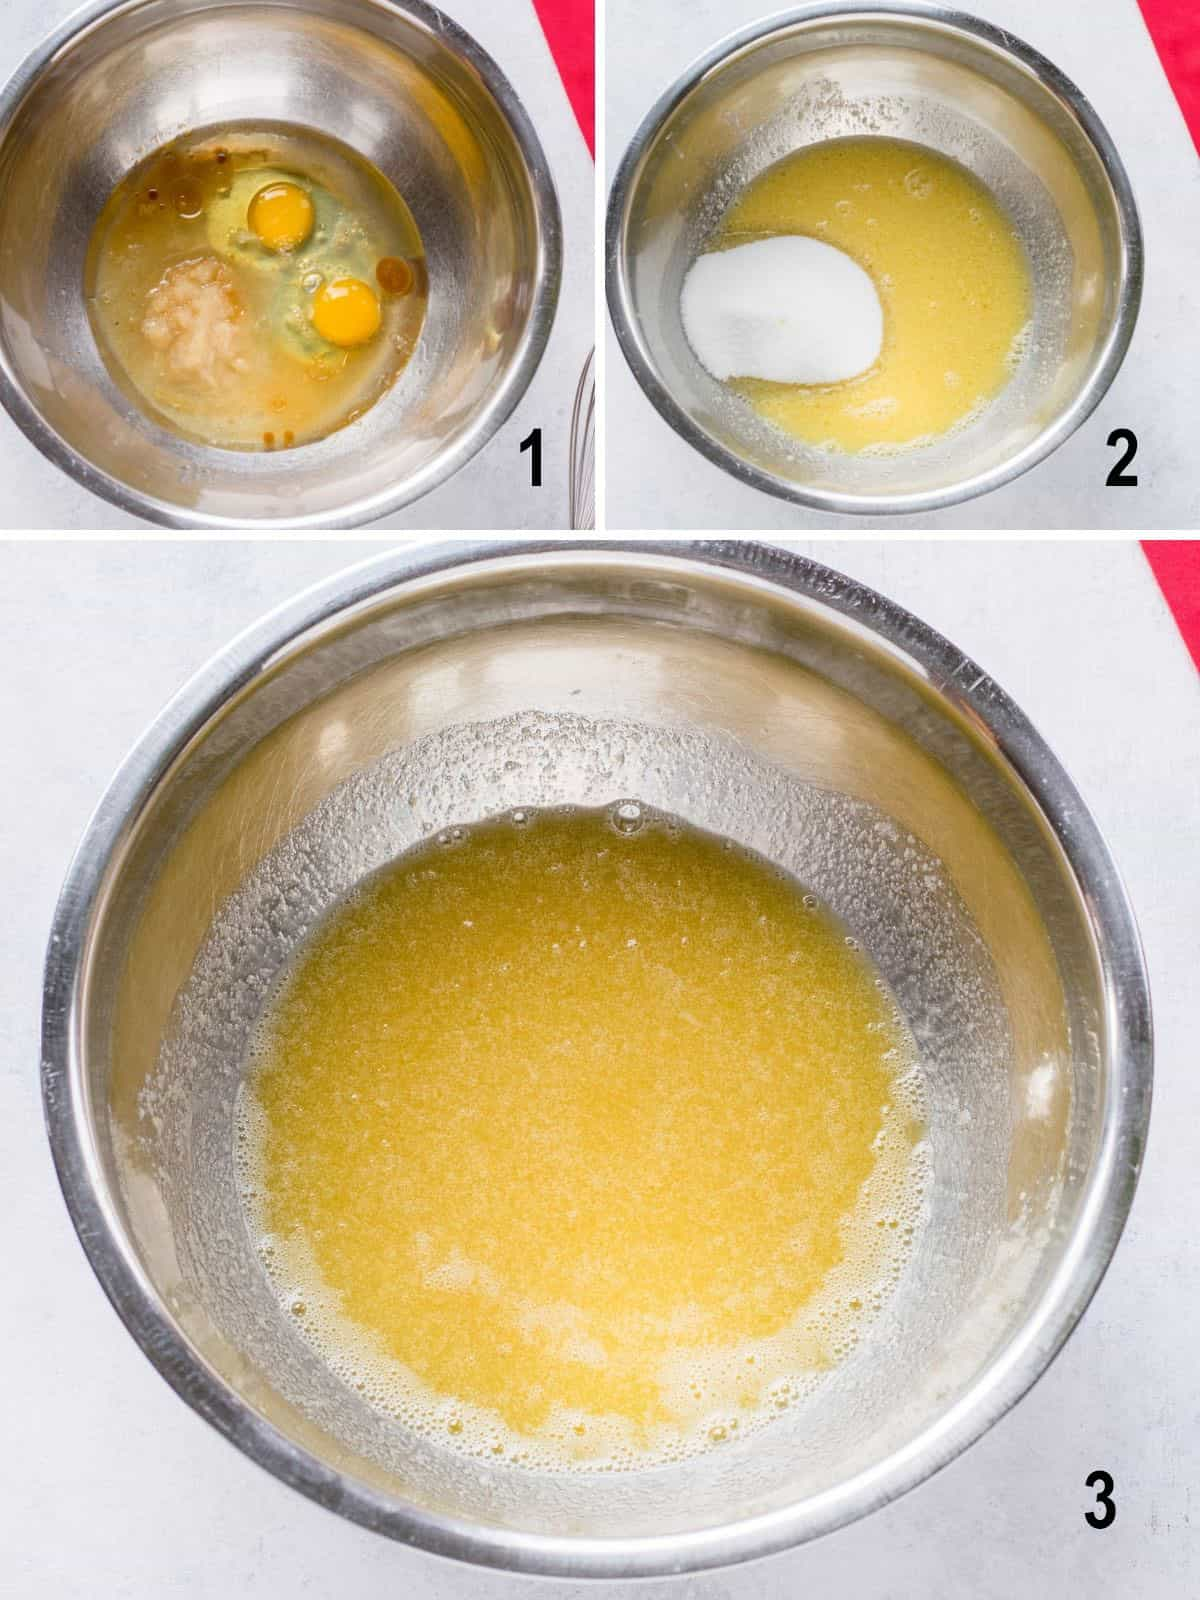 eggs and wet ingredients in bowl, sugar added, yellow egg mixture